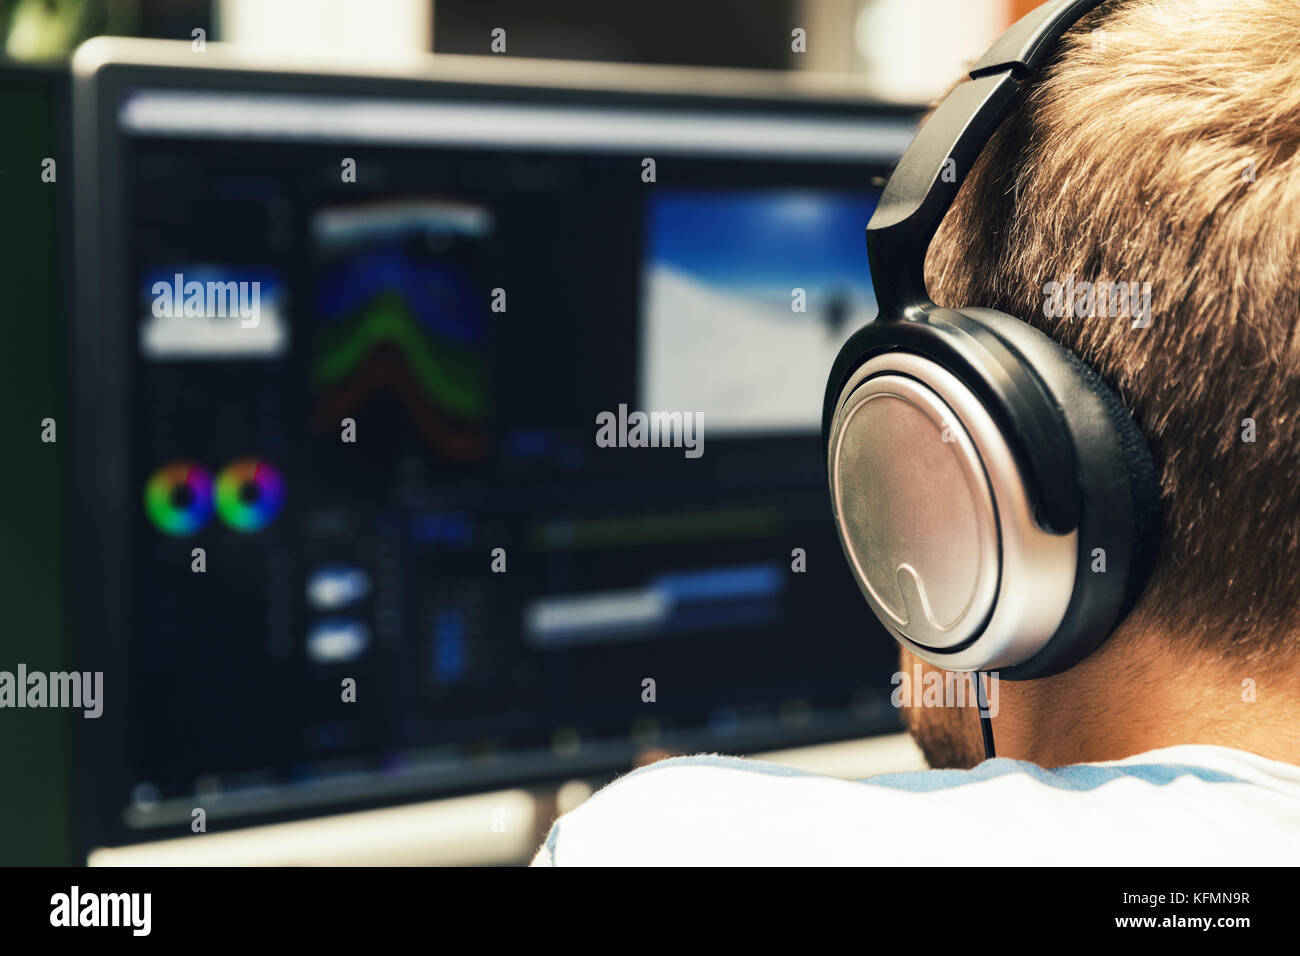 man doing video editing on computer with headphones on - Stock Image